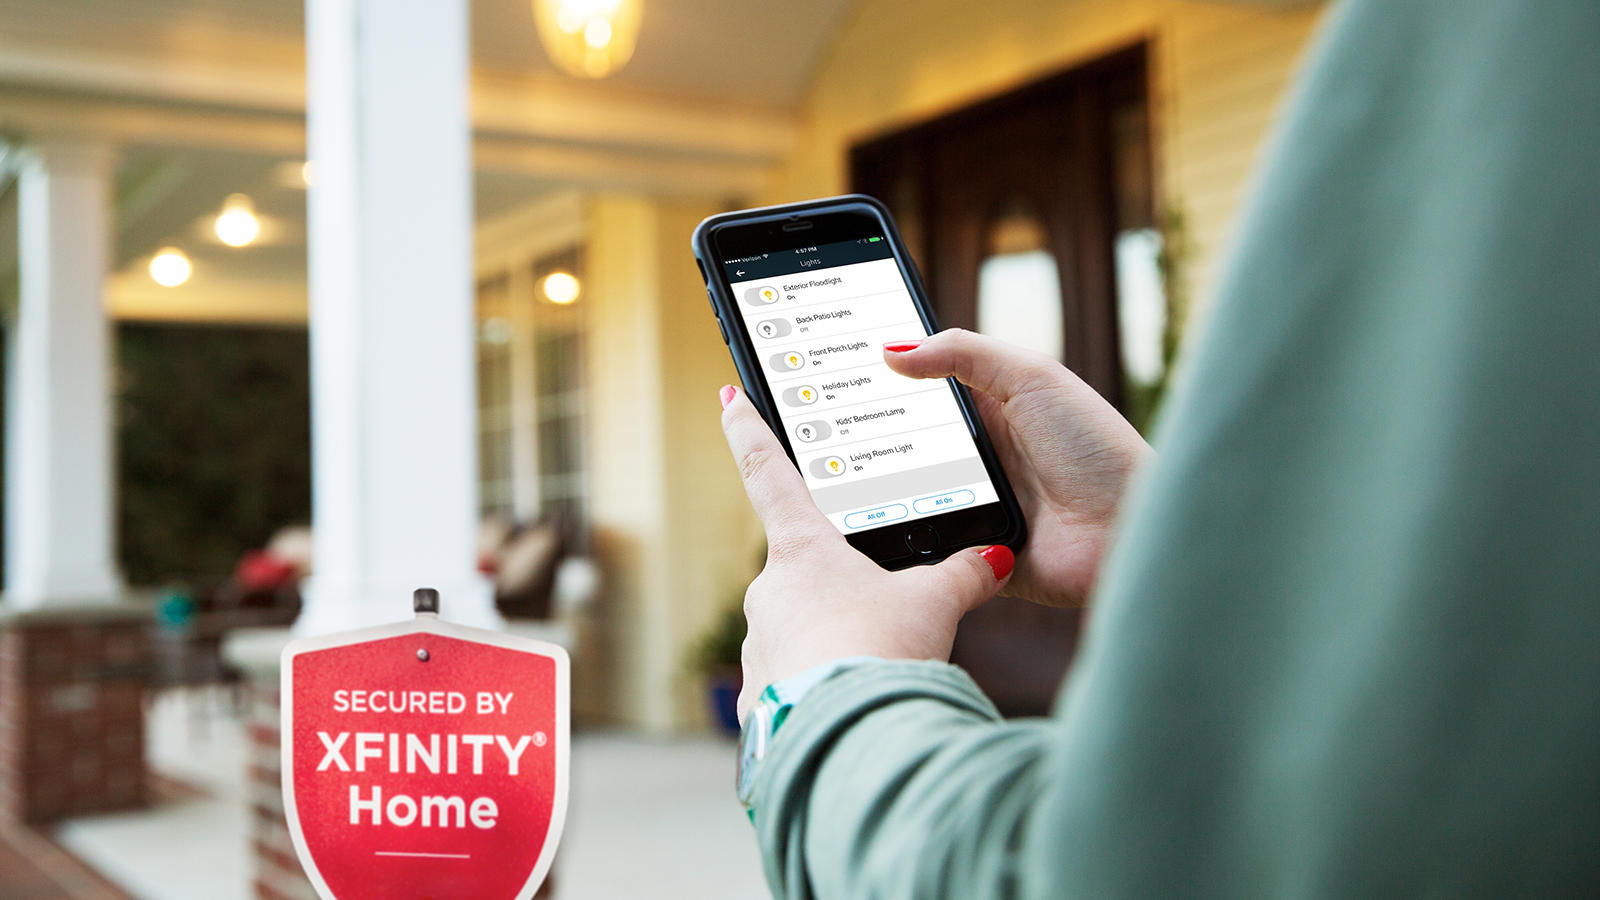 With the Xfinity Home app it's easy to remotely turn lights on/off and set rules so lights automatically turn on when it gets dark outside or turn lights off when the home is armed for the night. (Photo: Business Wire)